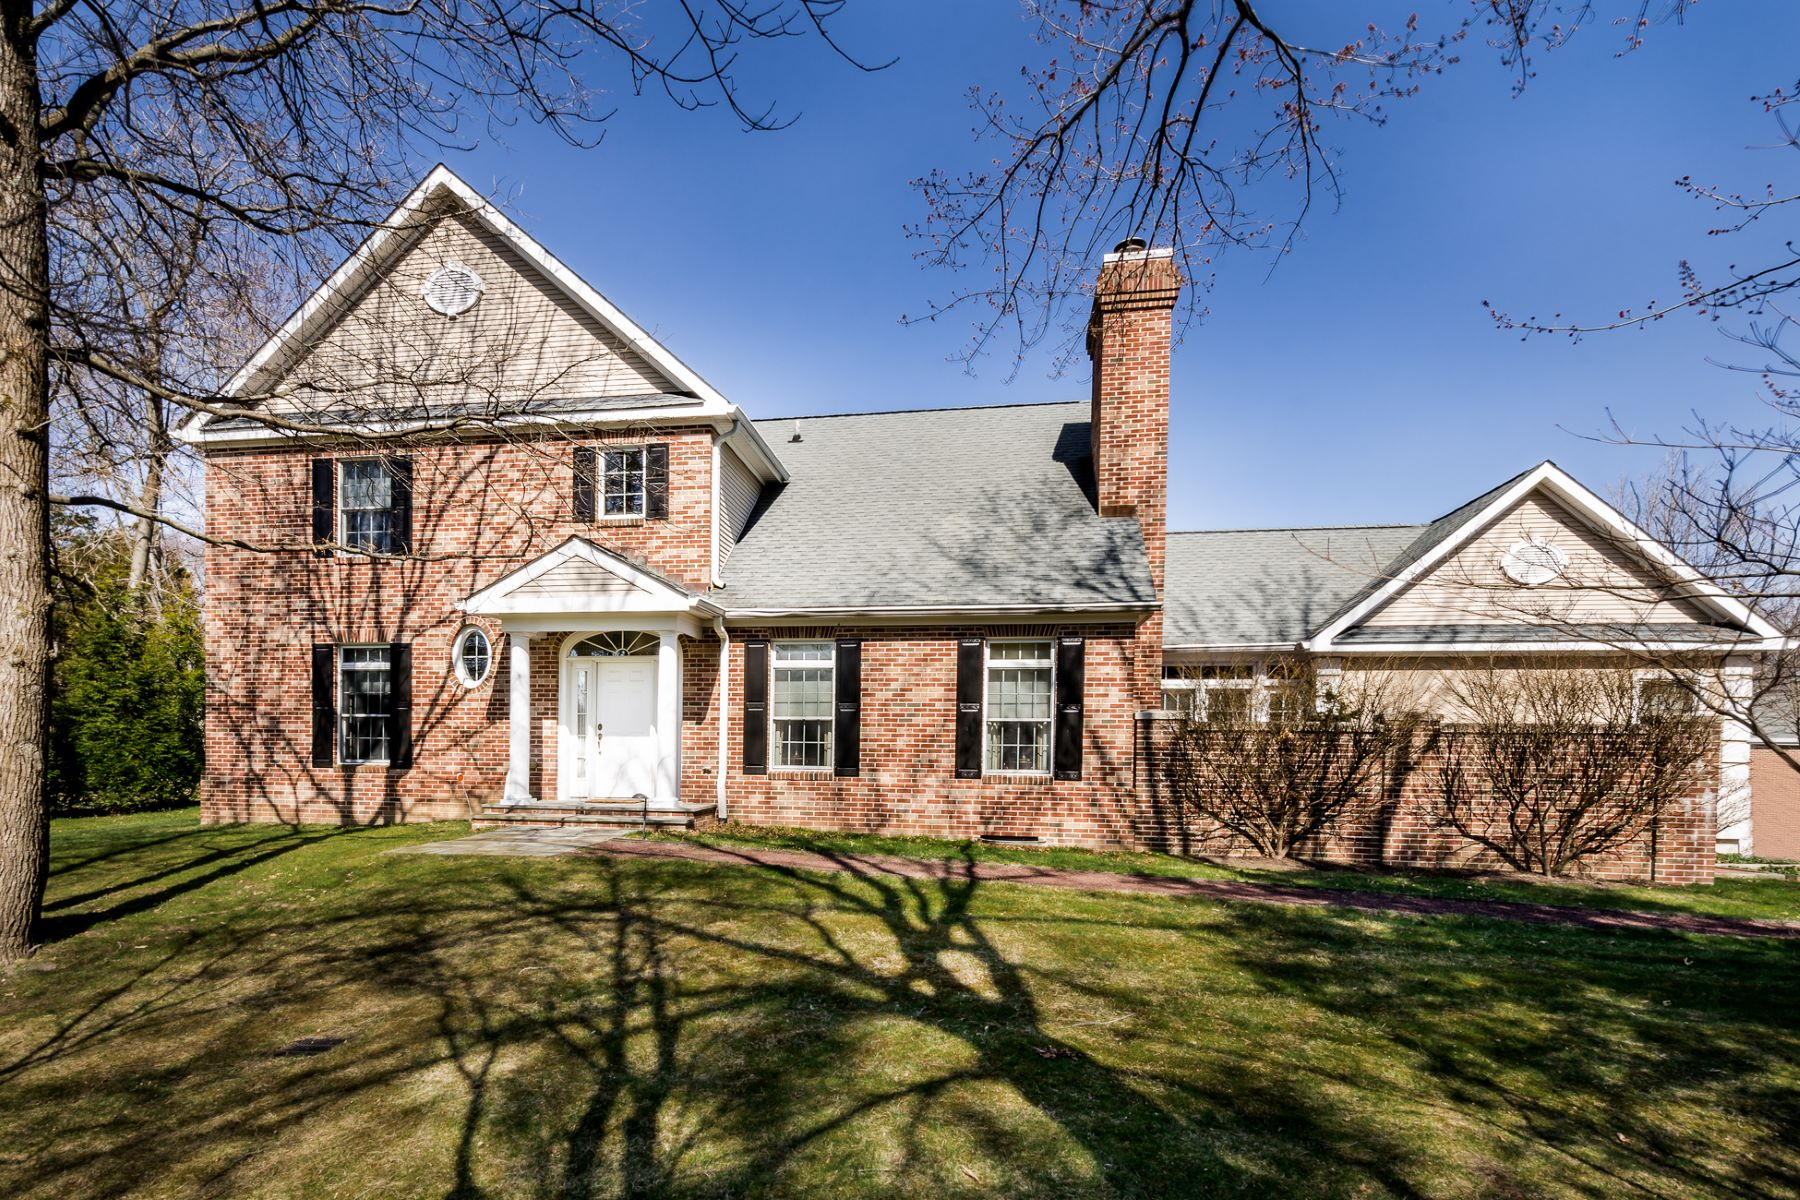 Single Family Home for Sale at Calm Graciousness in Governors Lane 15 Governors Lane Princeton, New Jersey 08540 United States